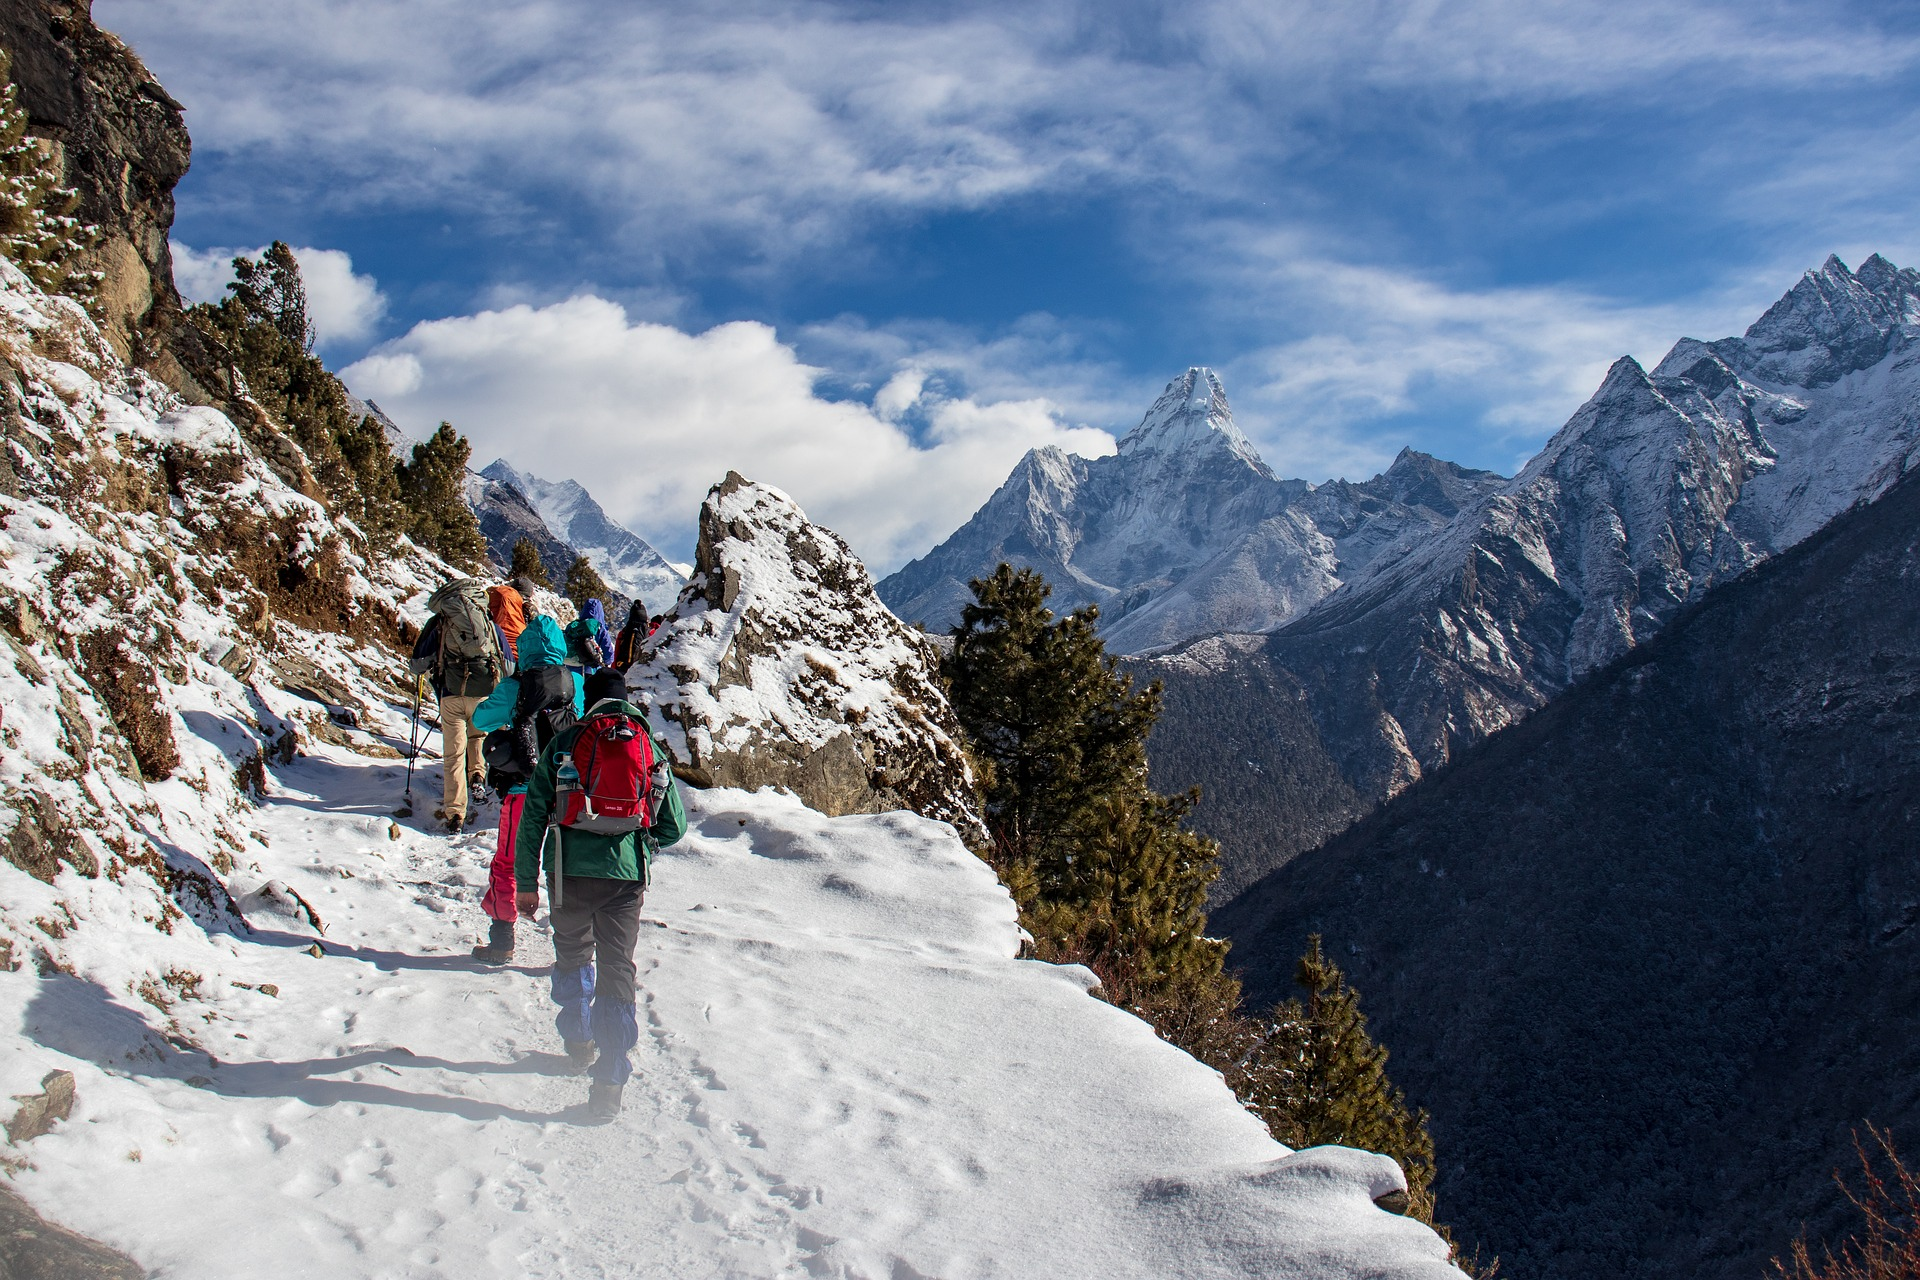 A group hiking in the Himalaya mountains in Nepal.